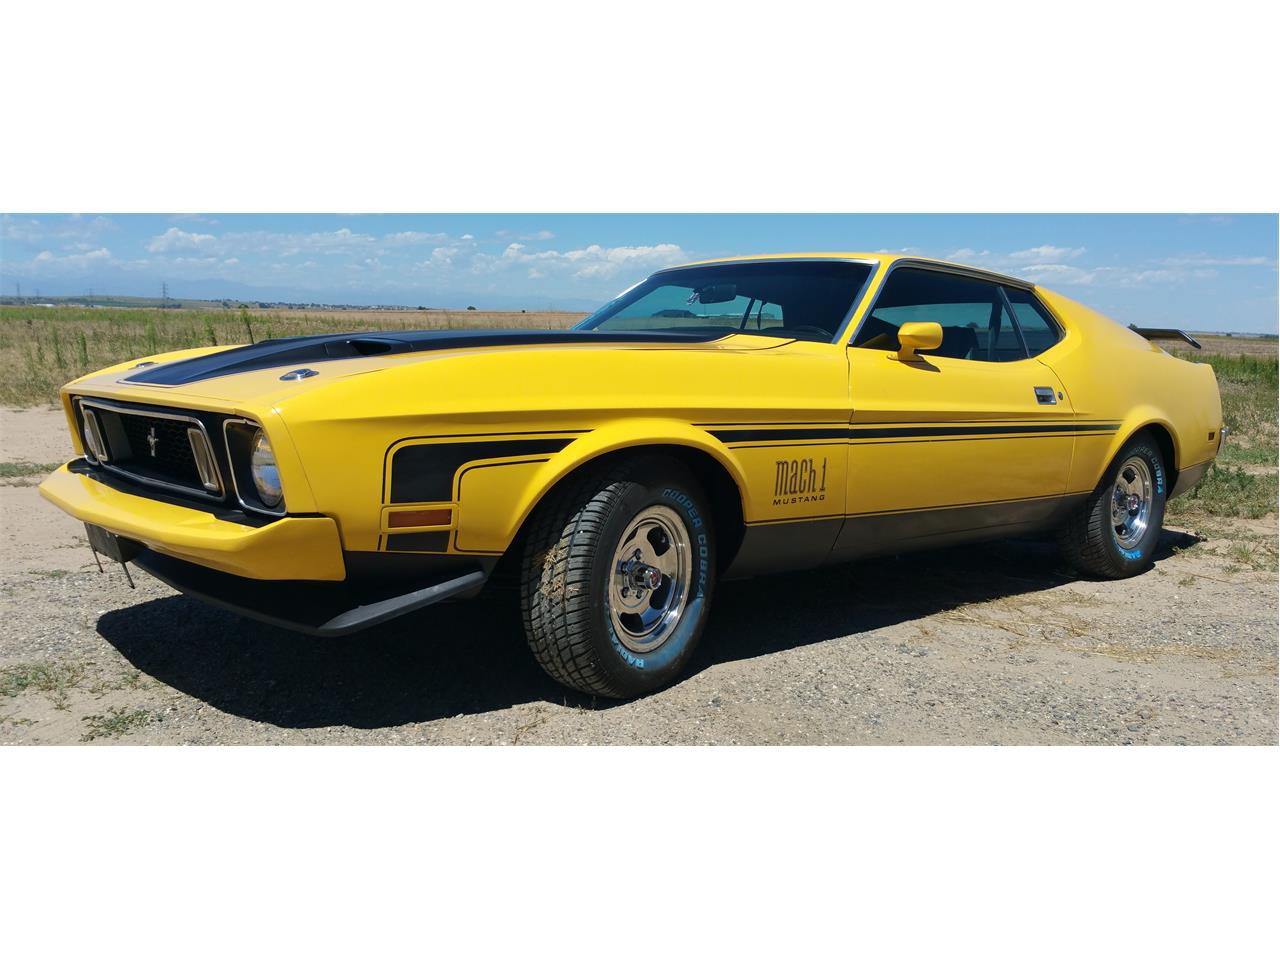 Large picture of 73 mustang mach 1 f0zm